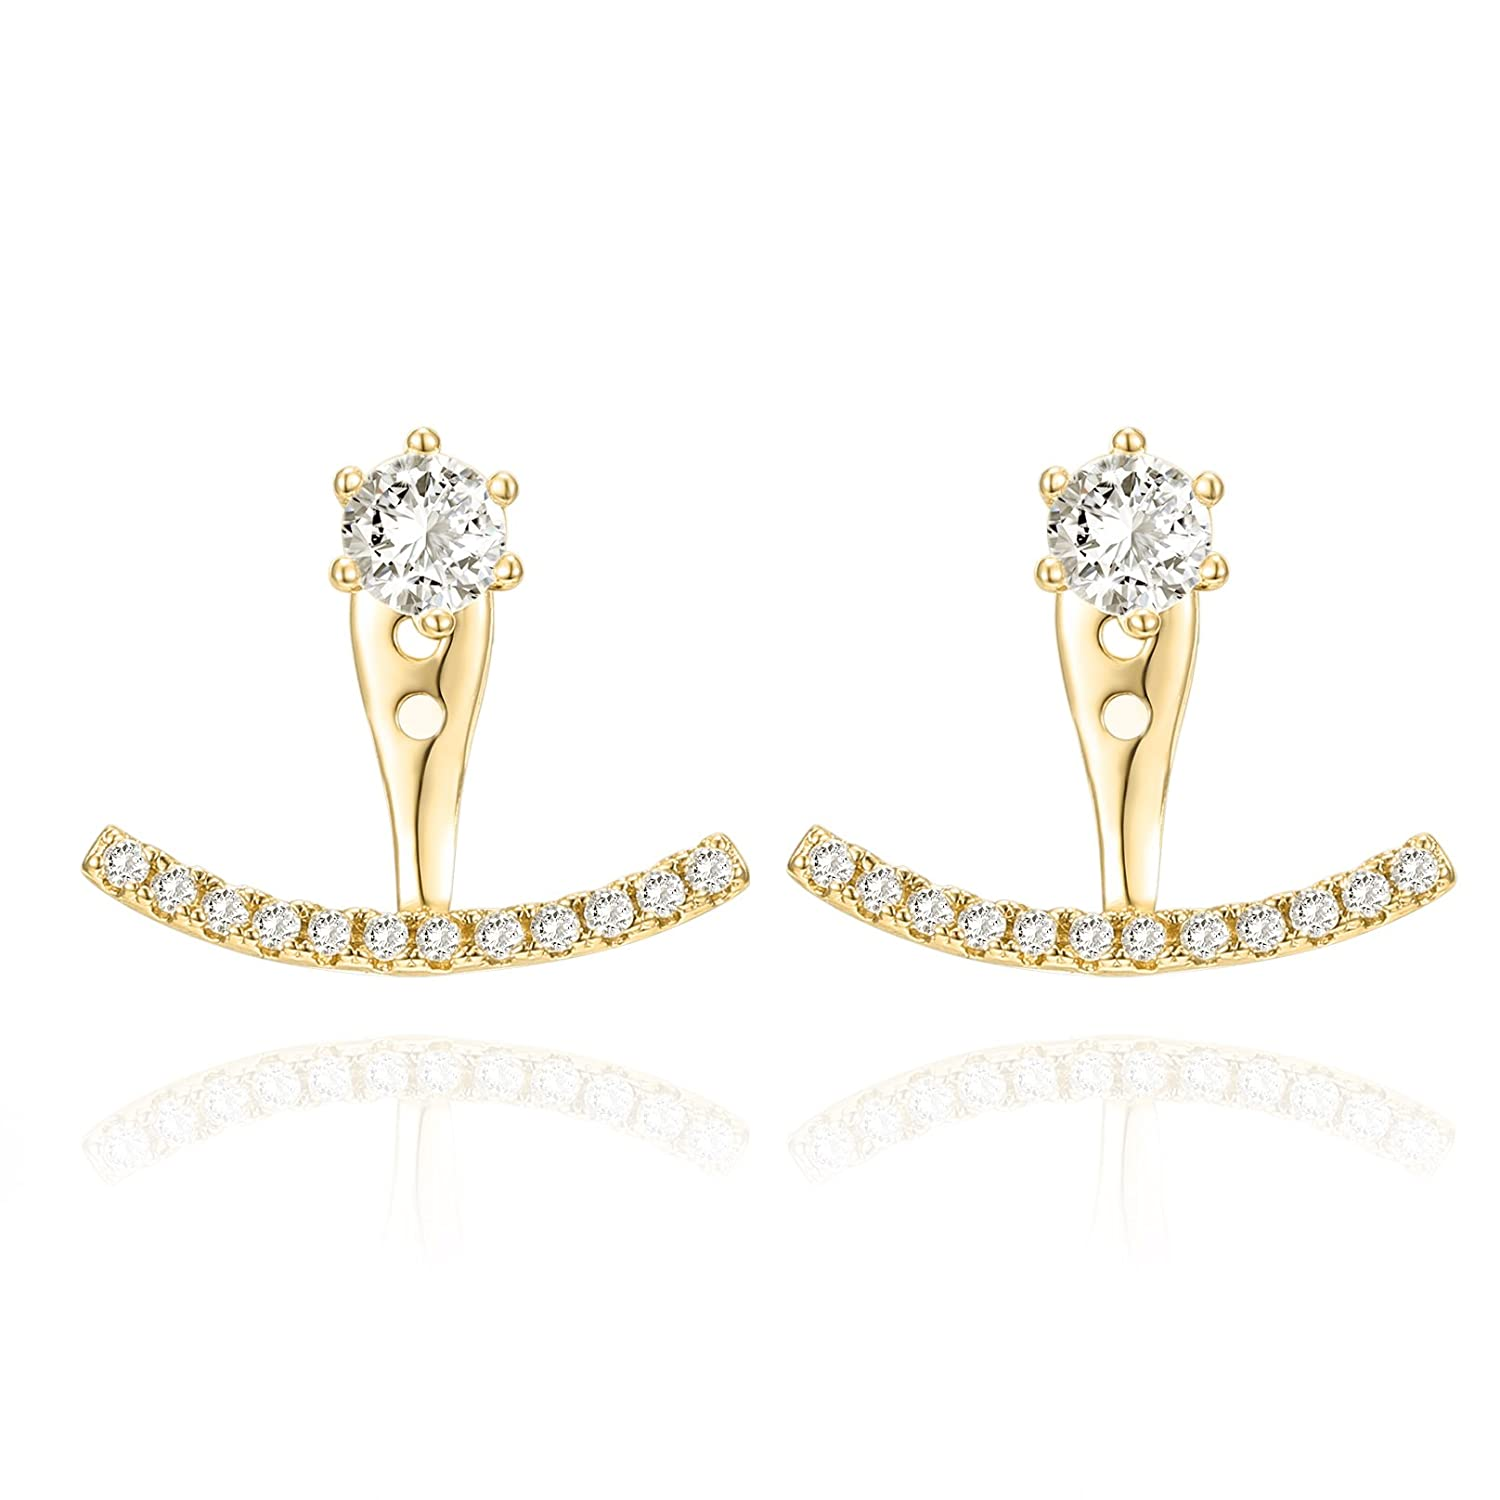 PAVOI 14K Gold Plated Sterling Silver Post Ear Jacket Cubic Zirconia Stud Earrings with Huggie Crawler Enhancer